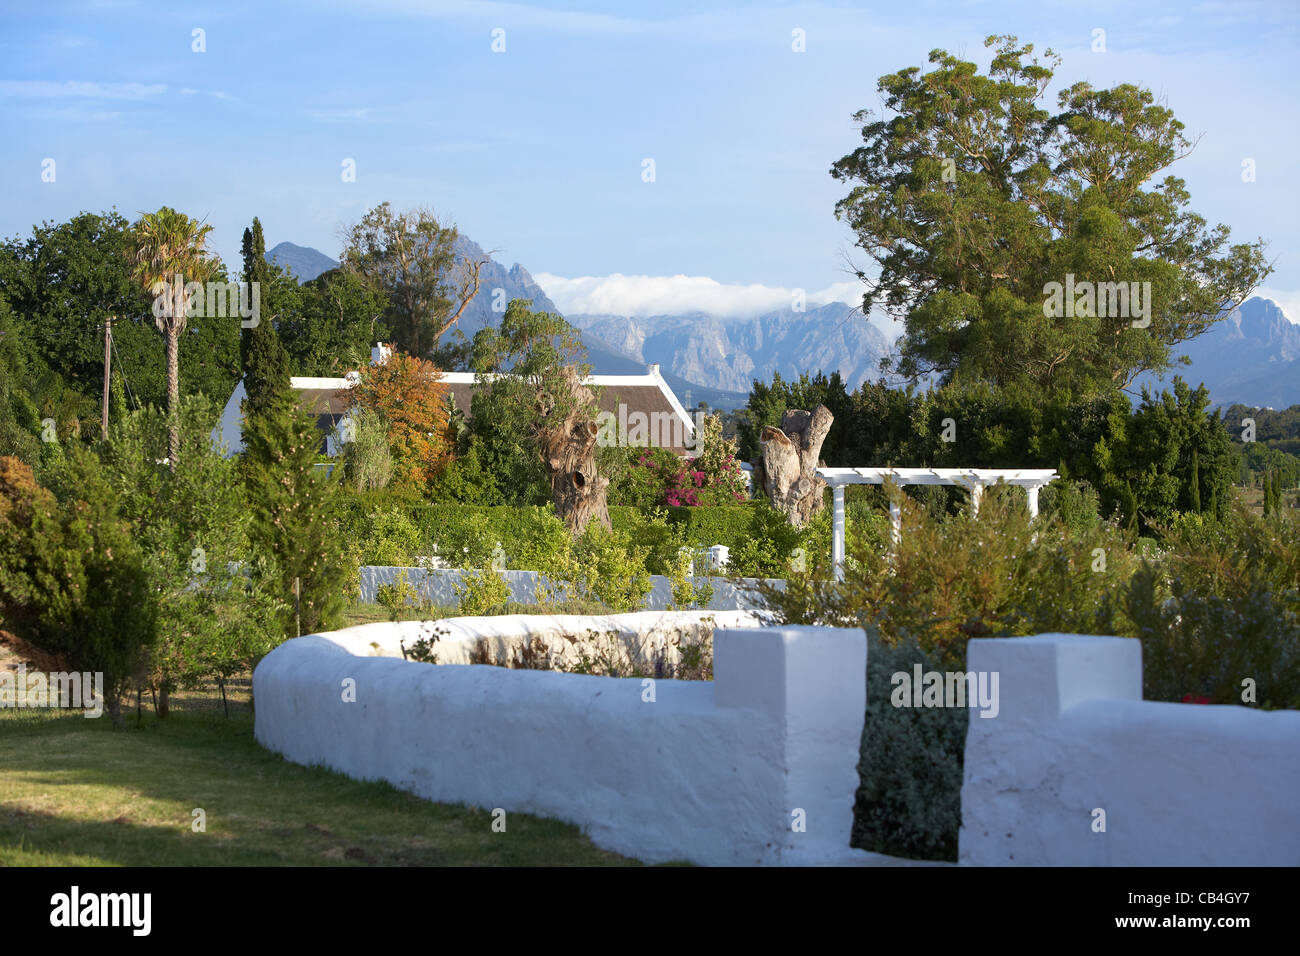 White garden wall and thatched roof with mountains near Stellenbosch